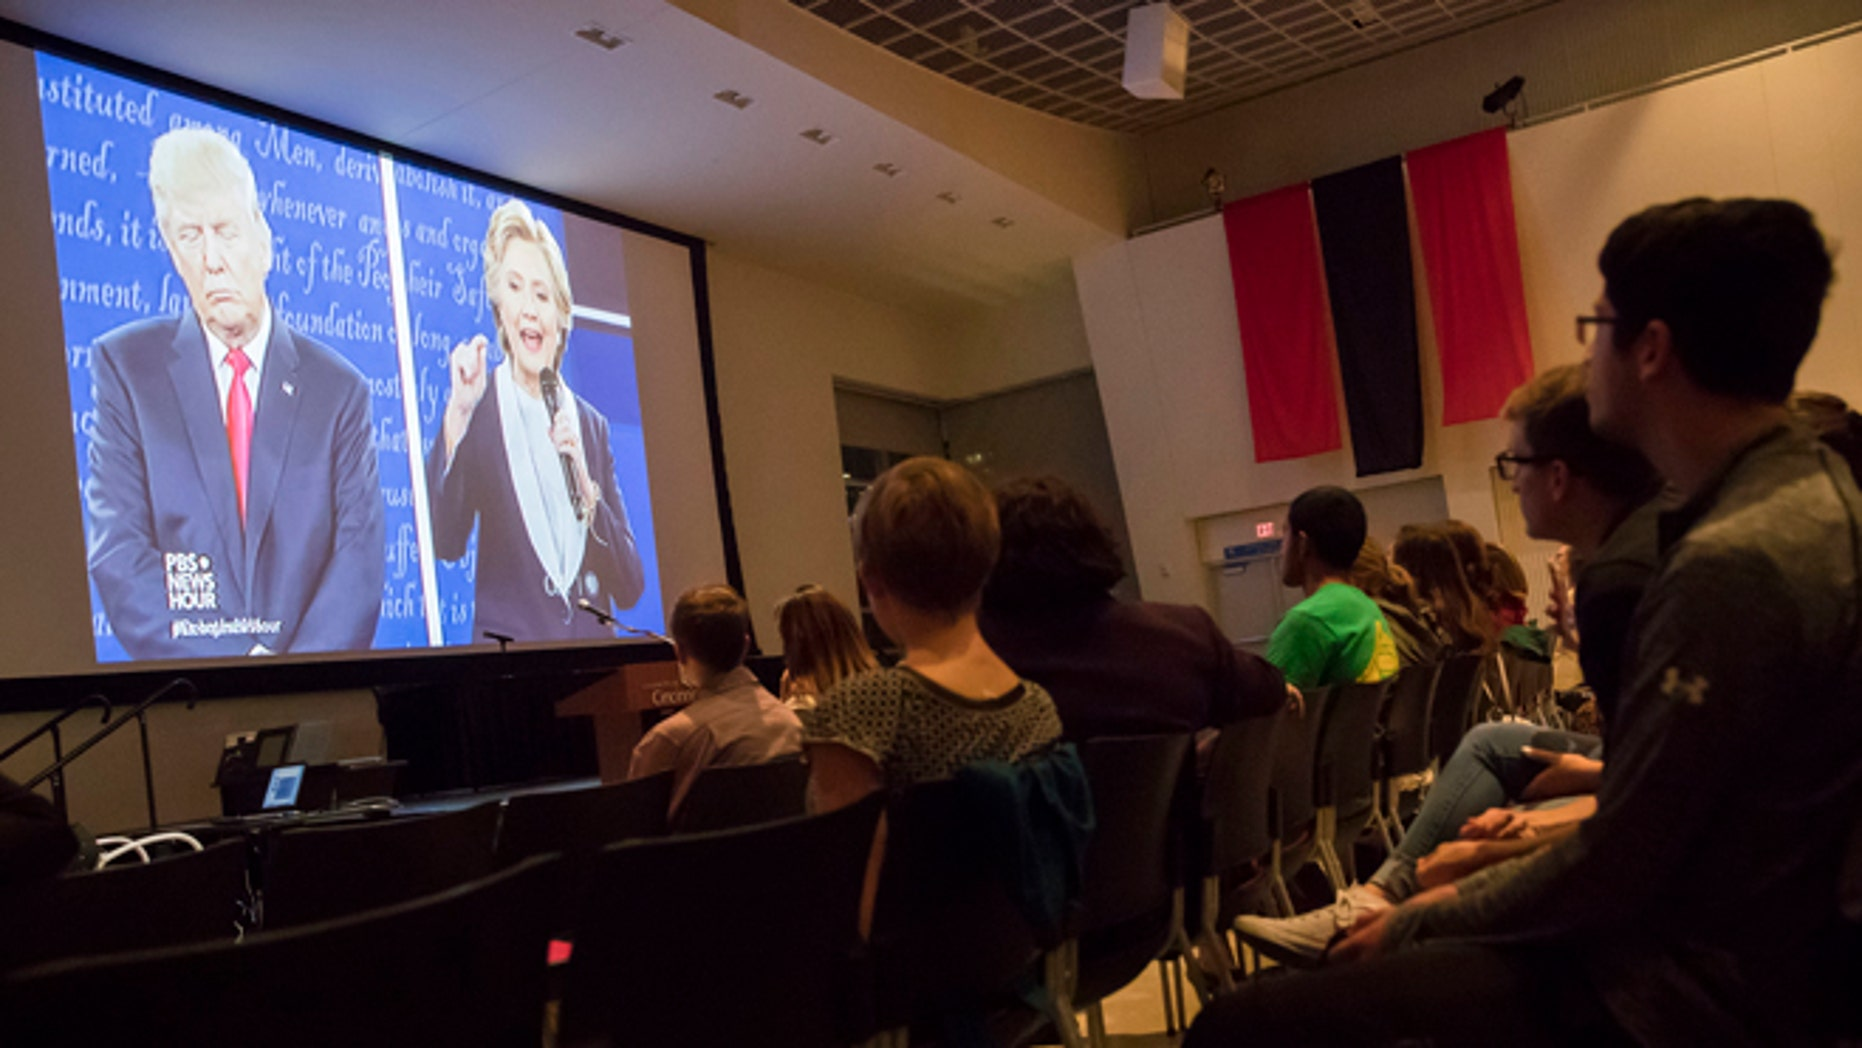 Second Presidential debate during a watch party at the University of Cincinnati, Sunday, Oct. 9, 2016, in Cincinnati.